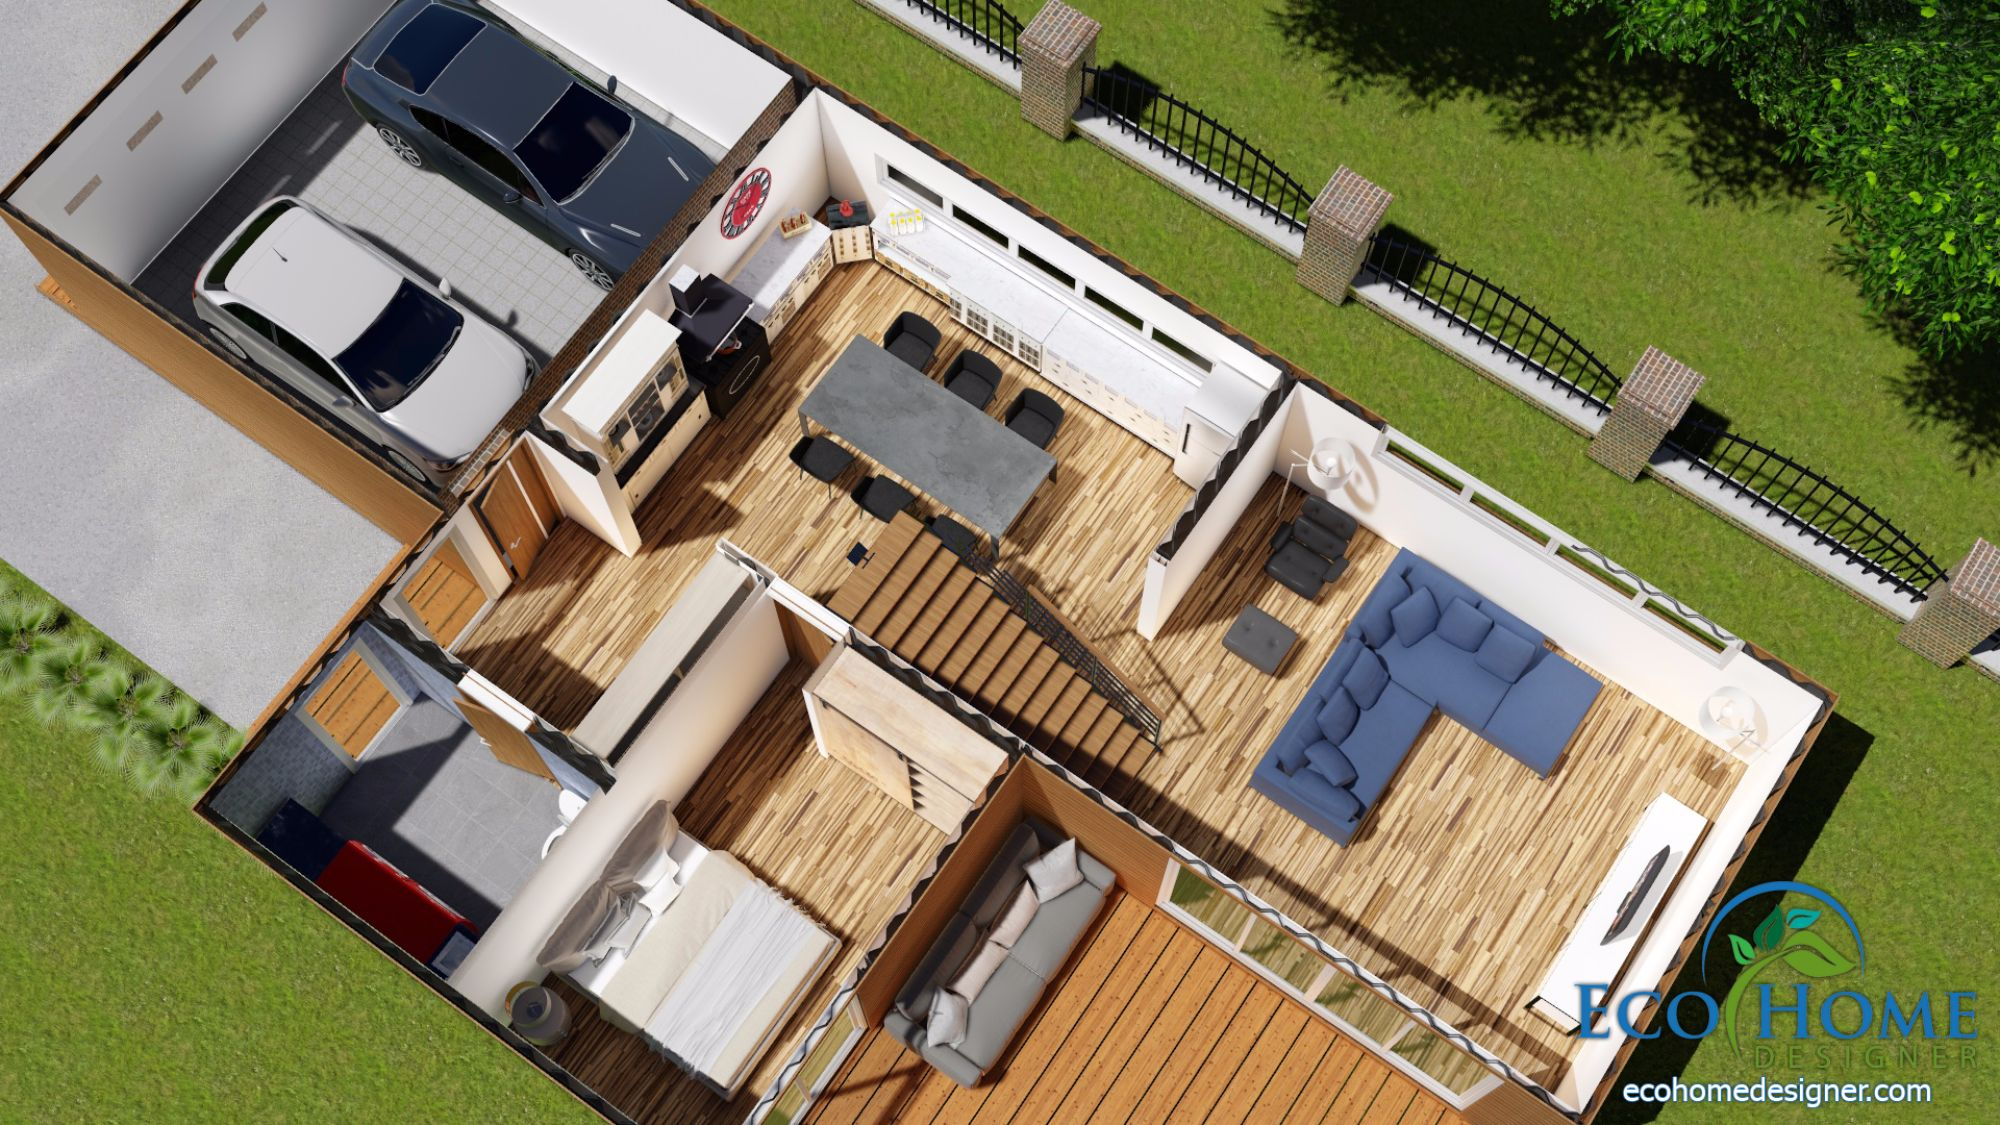 Container Haus Plan Sch17 10 X 20ft 2 Story Container Home Plans Eco Home